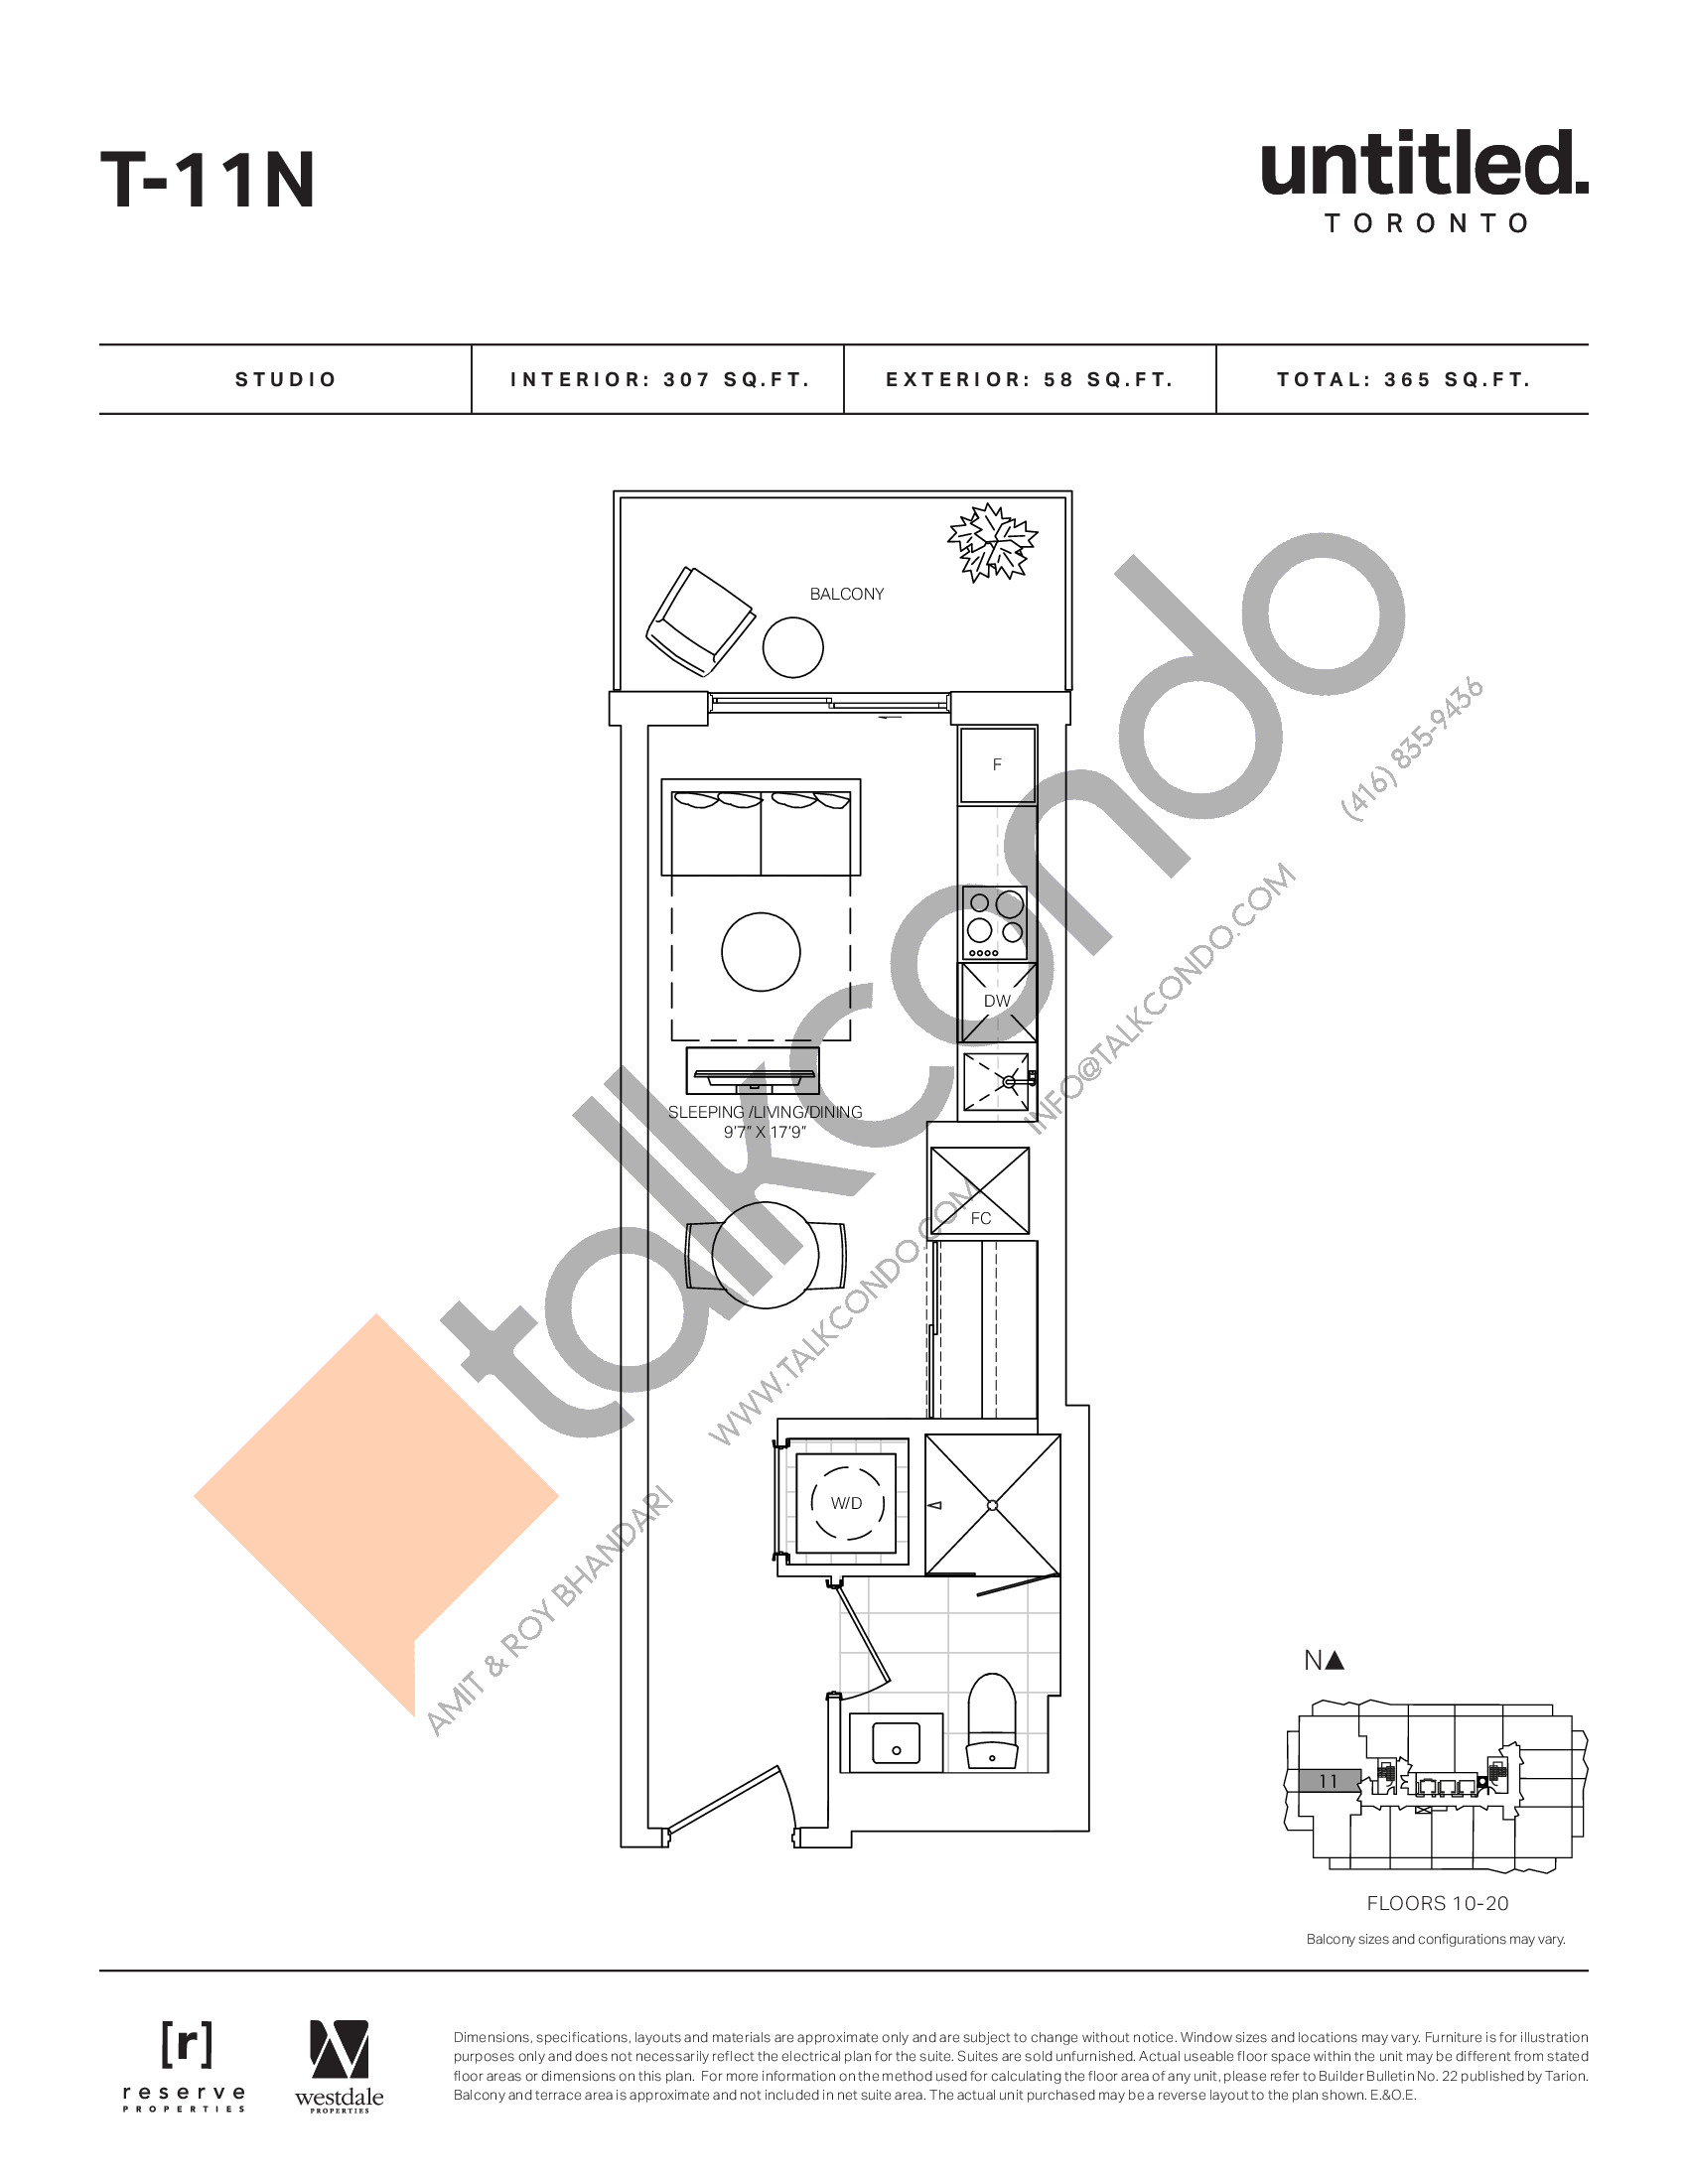 T-11N Floor Plan at Untitled North Tower Condos - 307 sq.ft